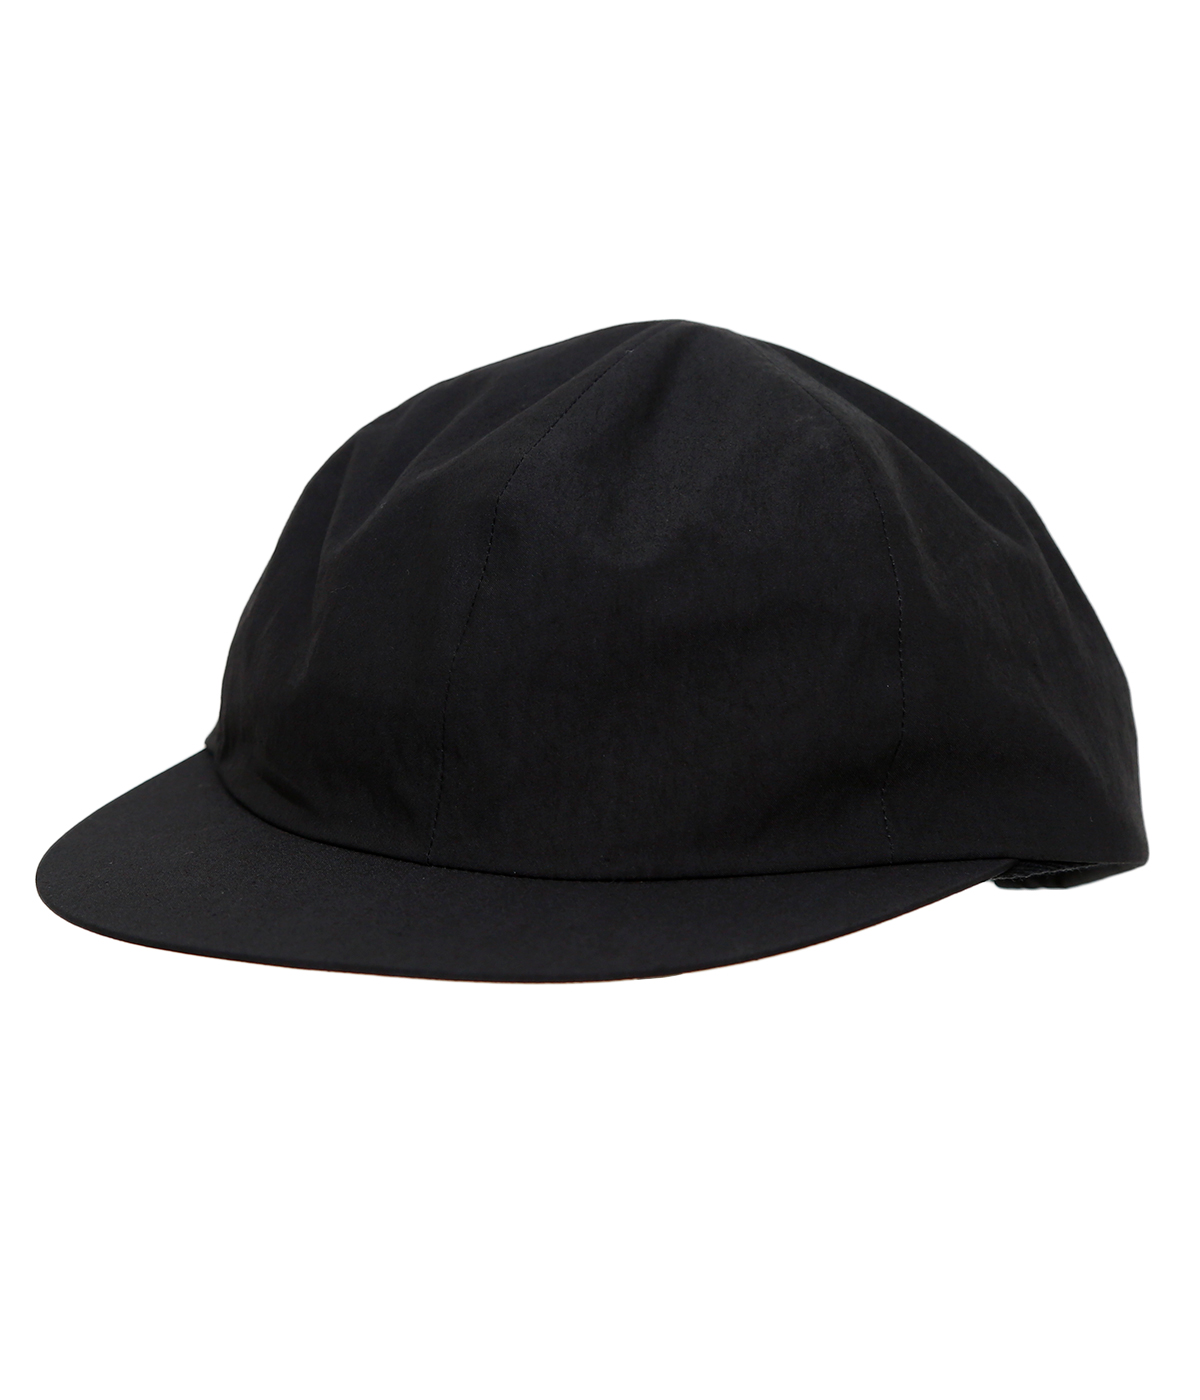 【予約】TYPEWRITER LITTLE BRIM CAP